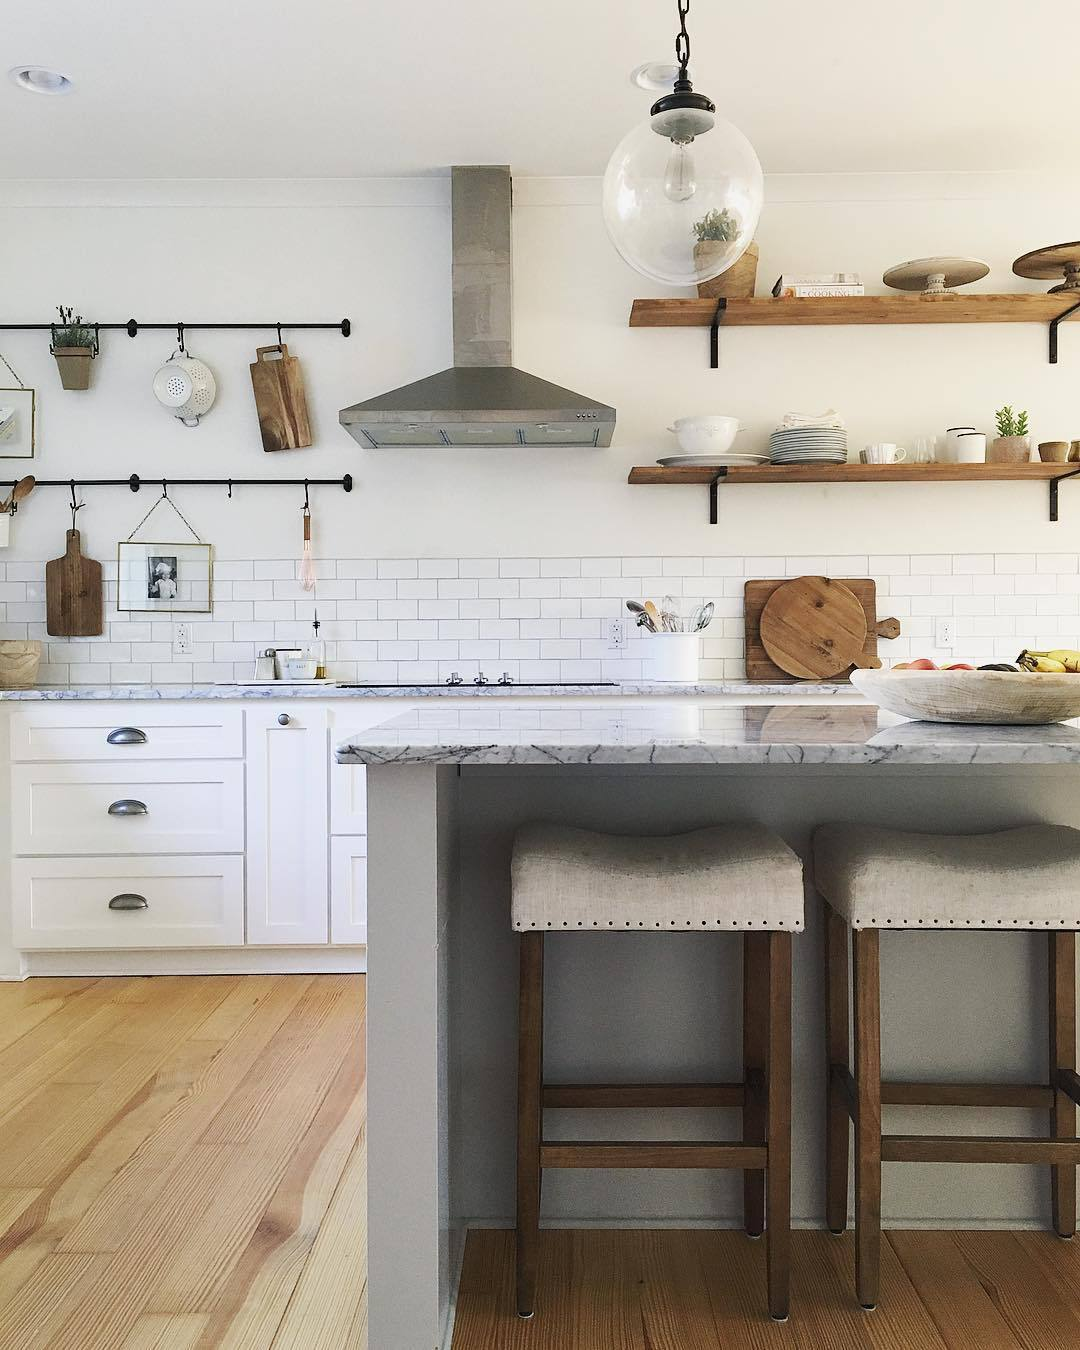 beautiful open kitchen shelving ideas spruce shelves floating for dishes wash basin mantel shelf brick fireplace black glass wall bookcase dimensions ikea kids white coat and hat